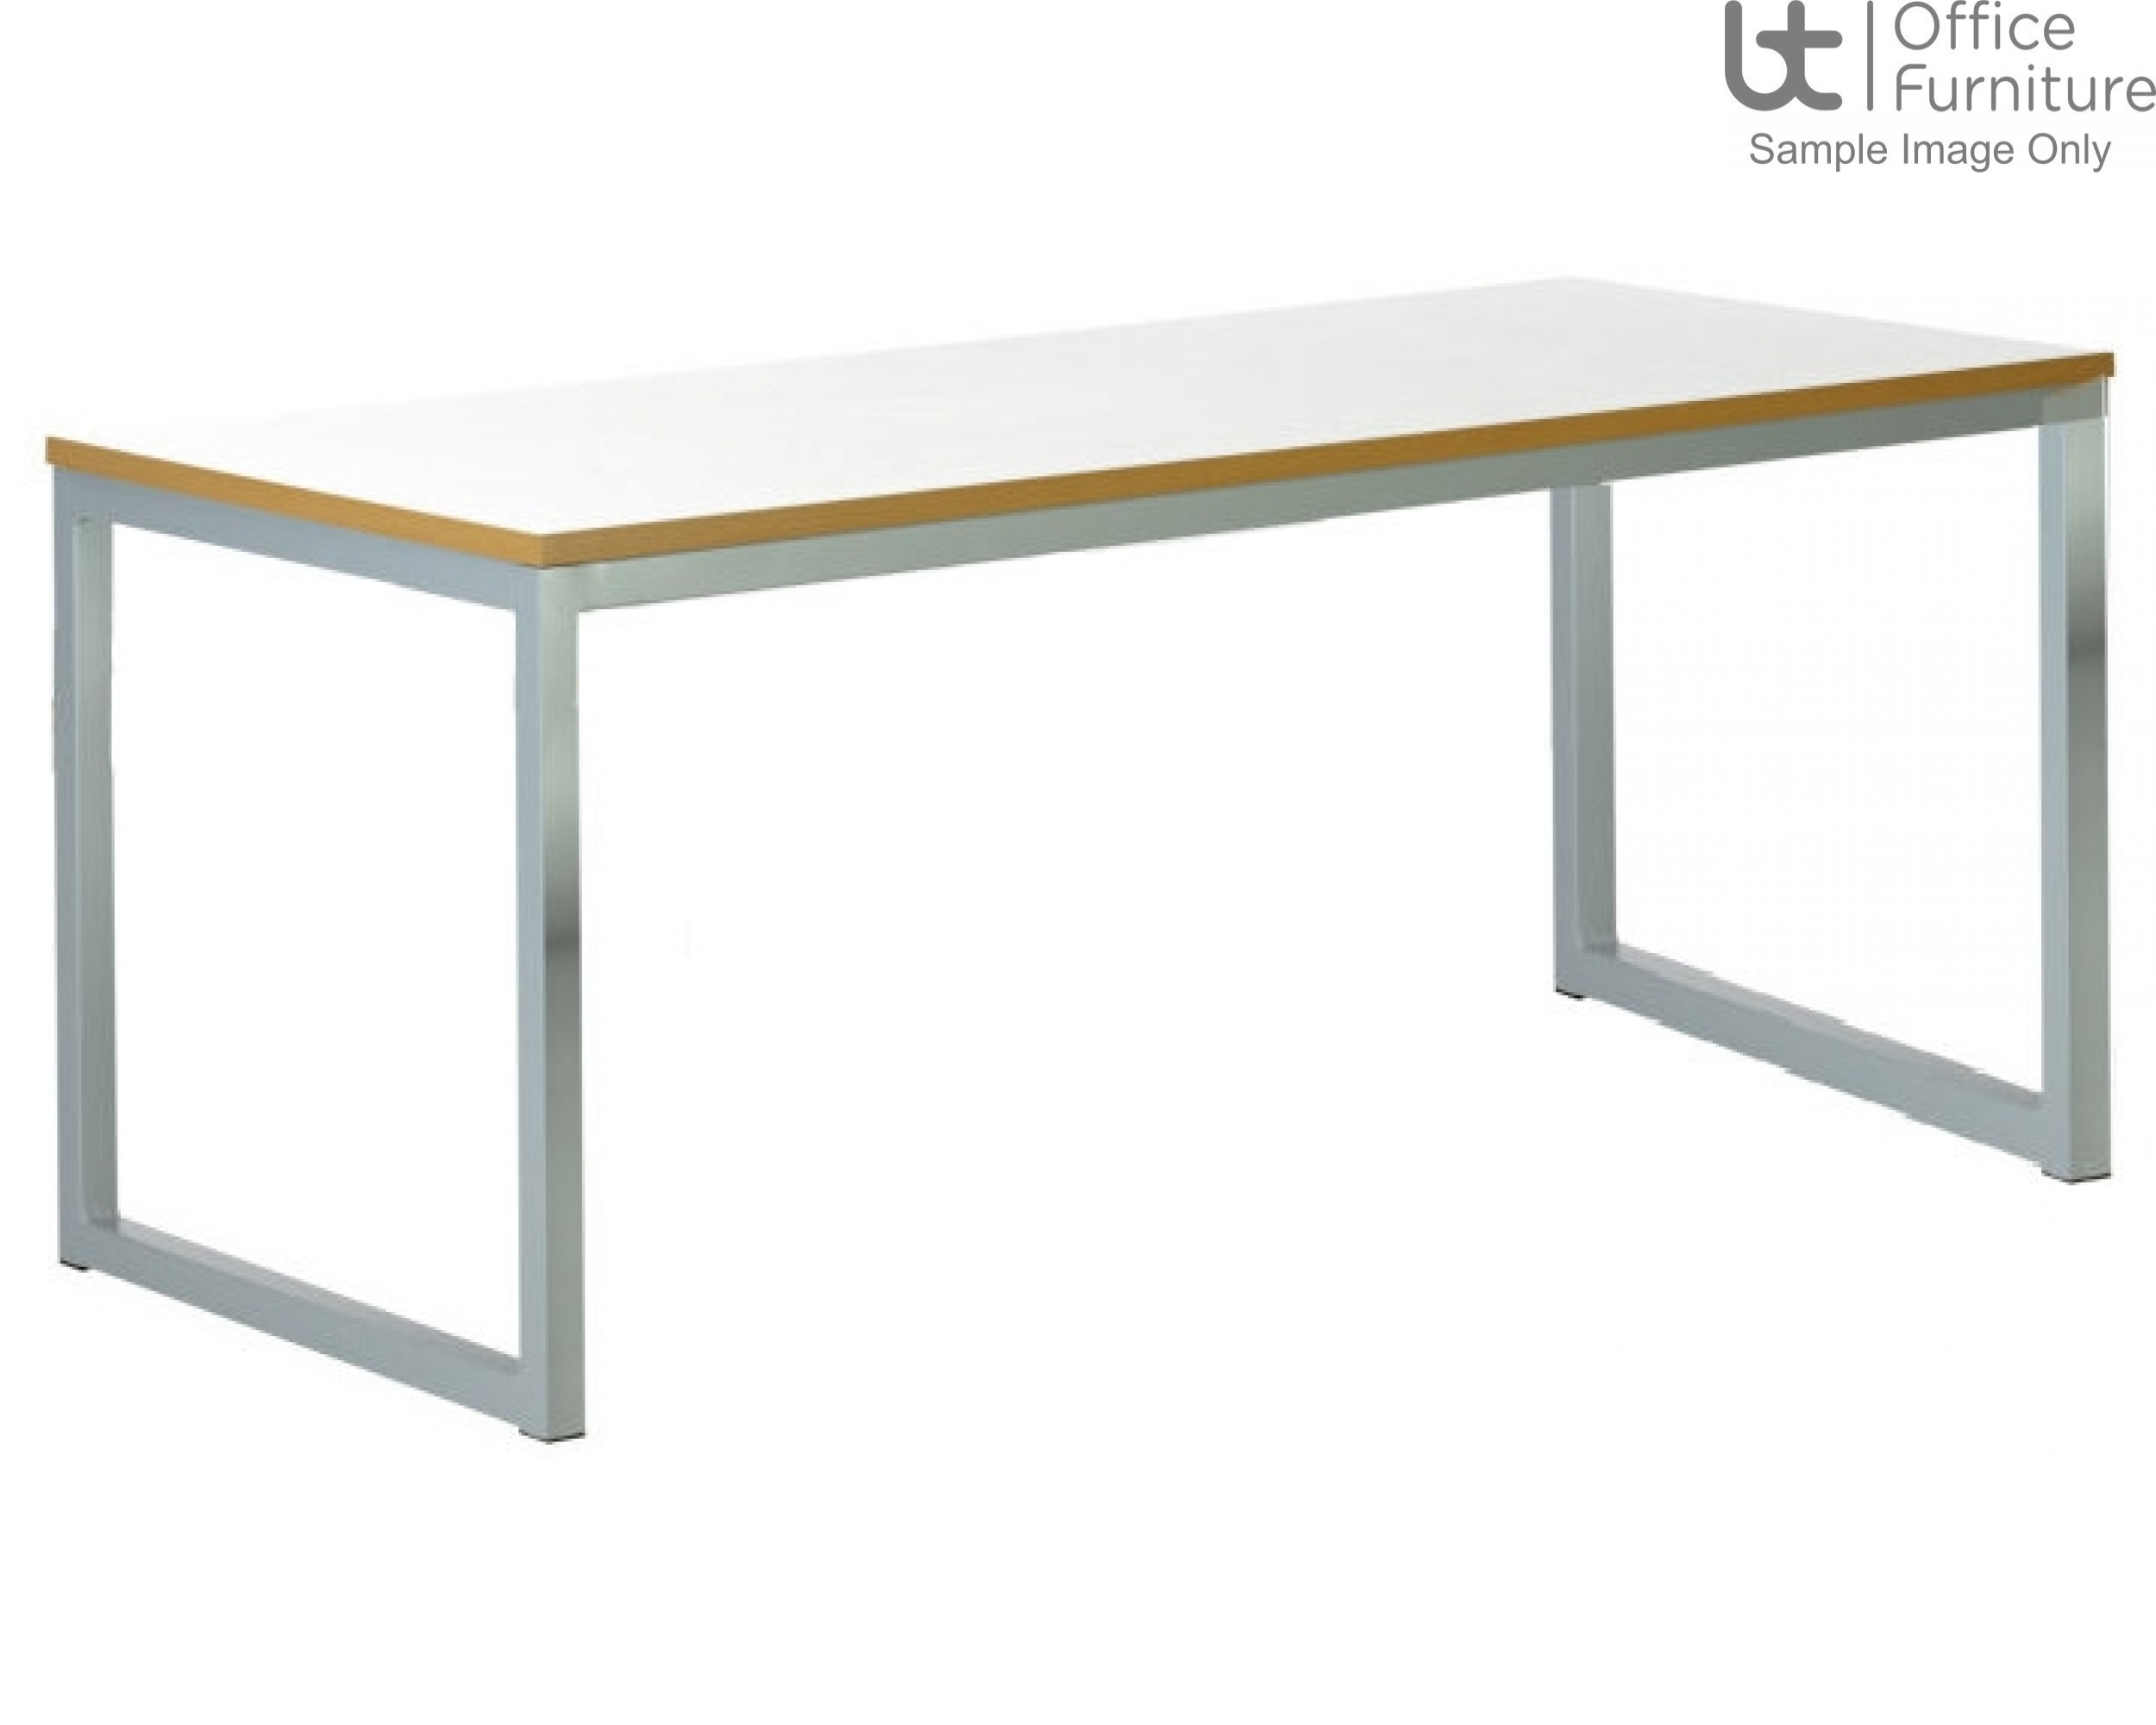 Urban 40/40 Robust 25mm Laminate Top School Bench Dining Table W1200mm (Std Frame Colours)